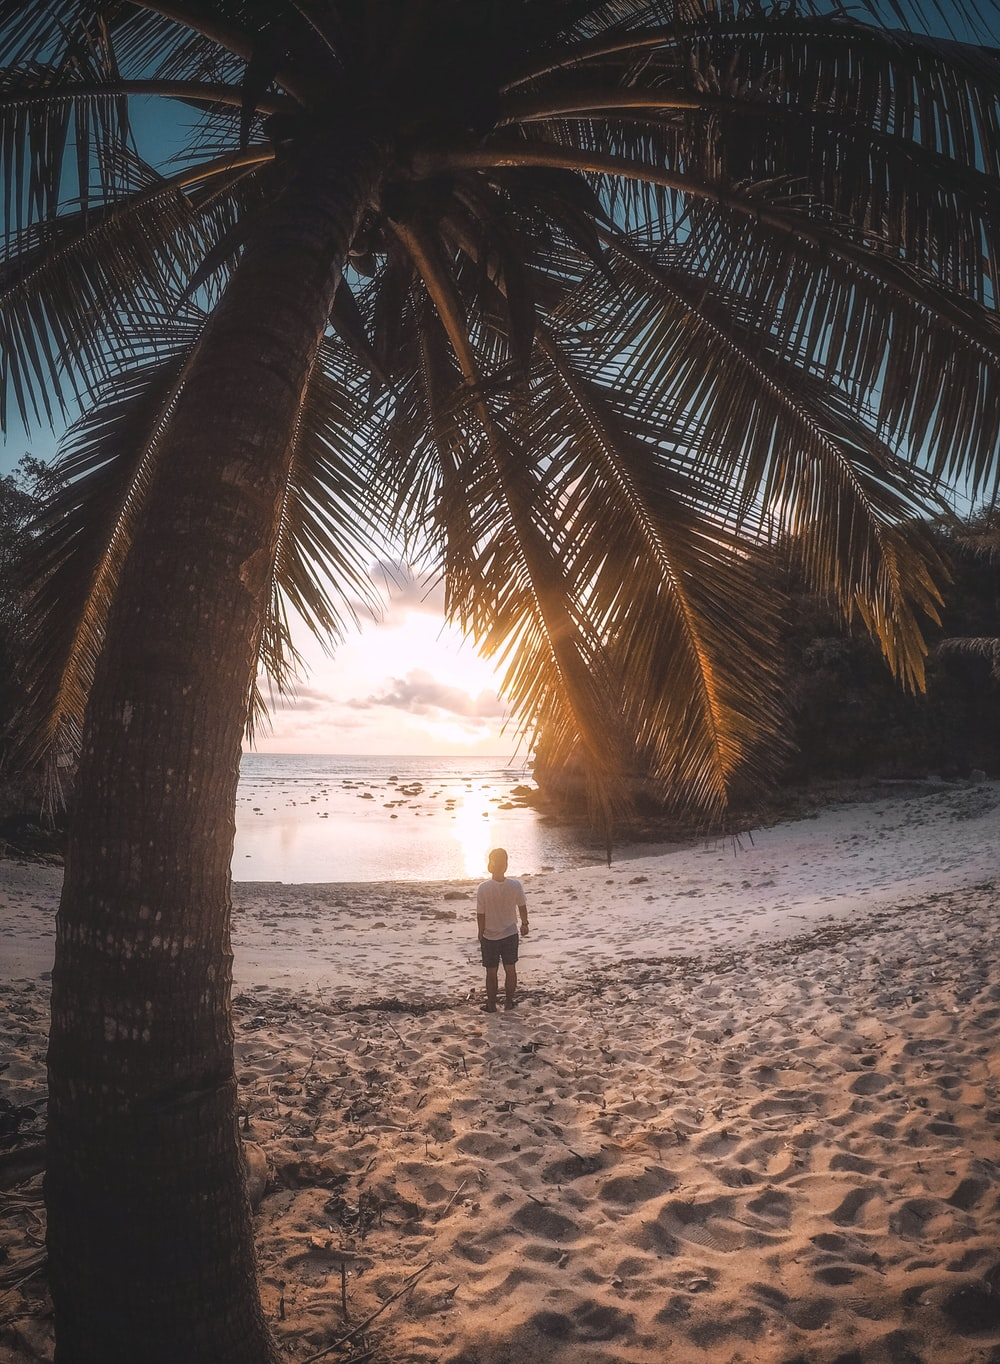 man standing on beach near palm treses